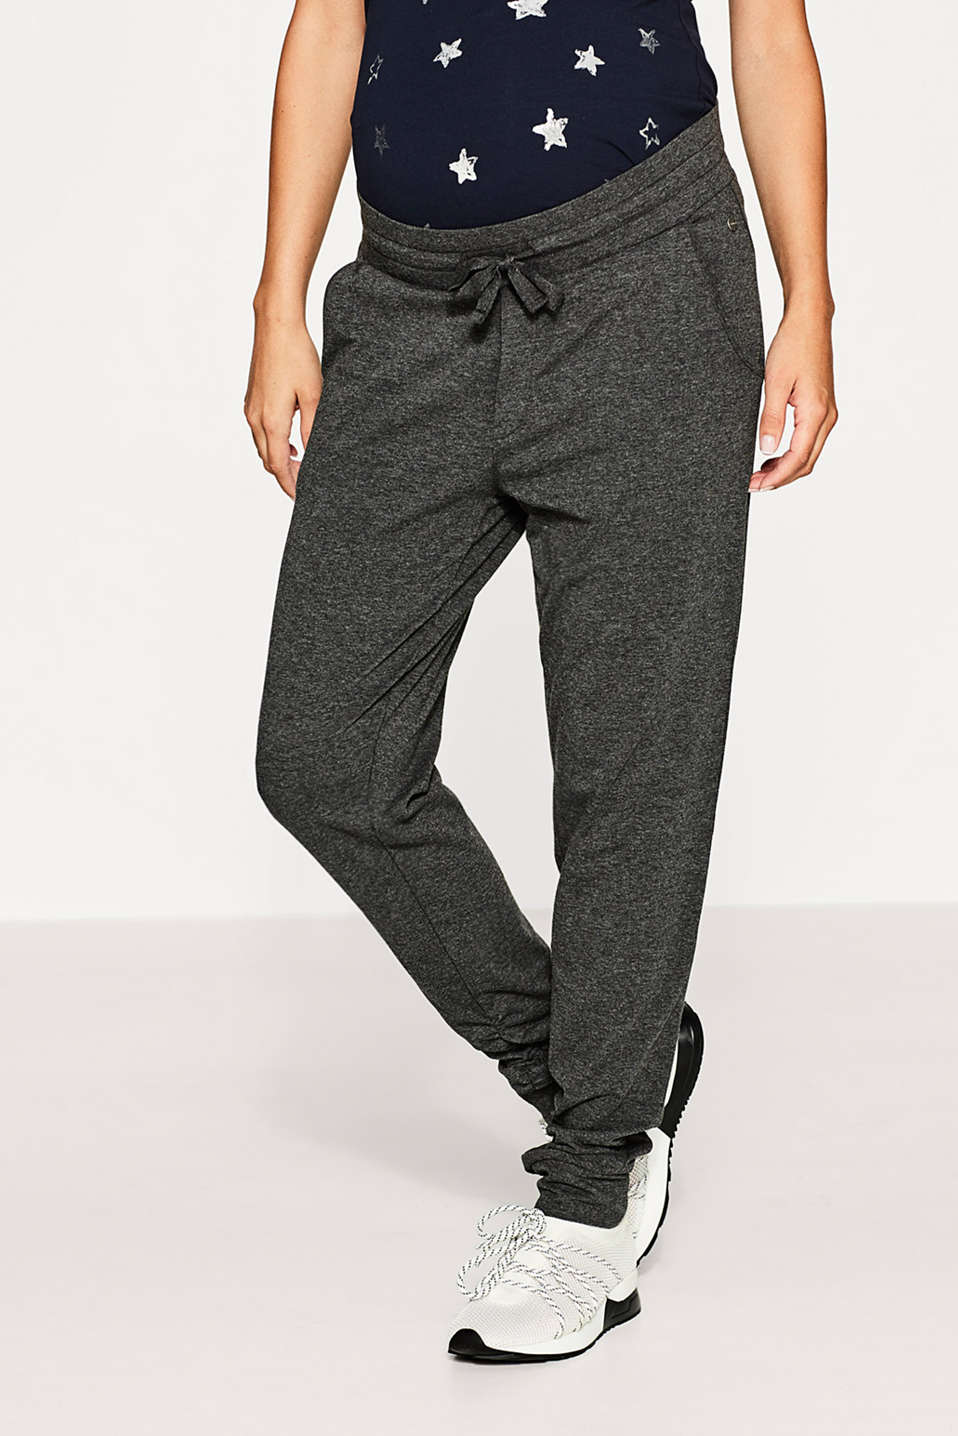 Esprit - Soft jersey trousers, under-bump waistband